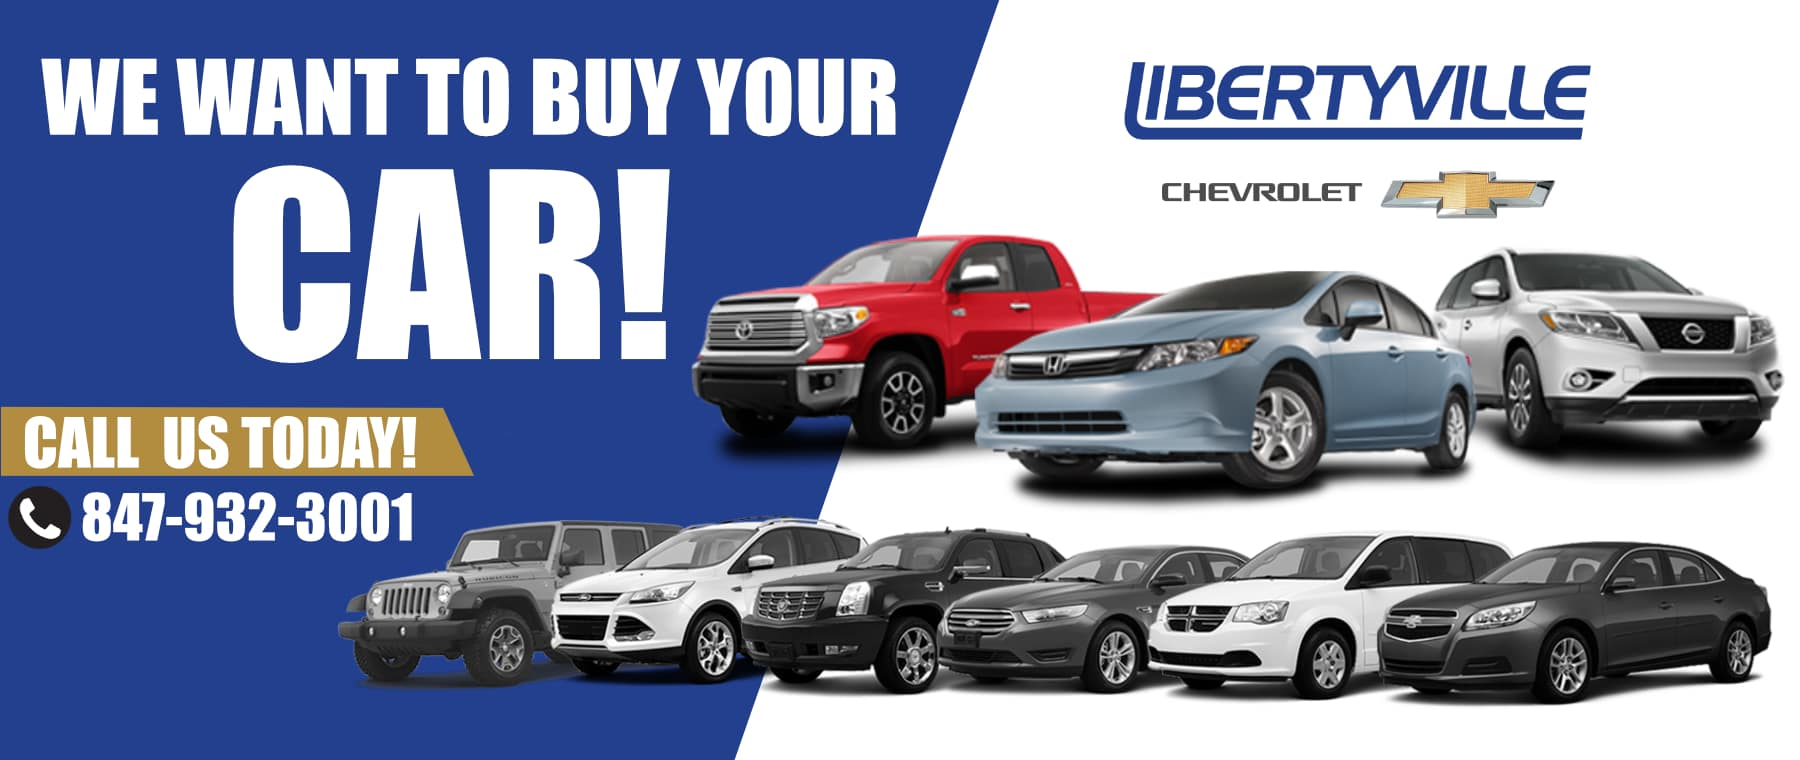 We_Want_To_Buy_Your_Car_New_Website_Libertyville